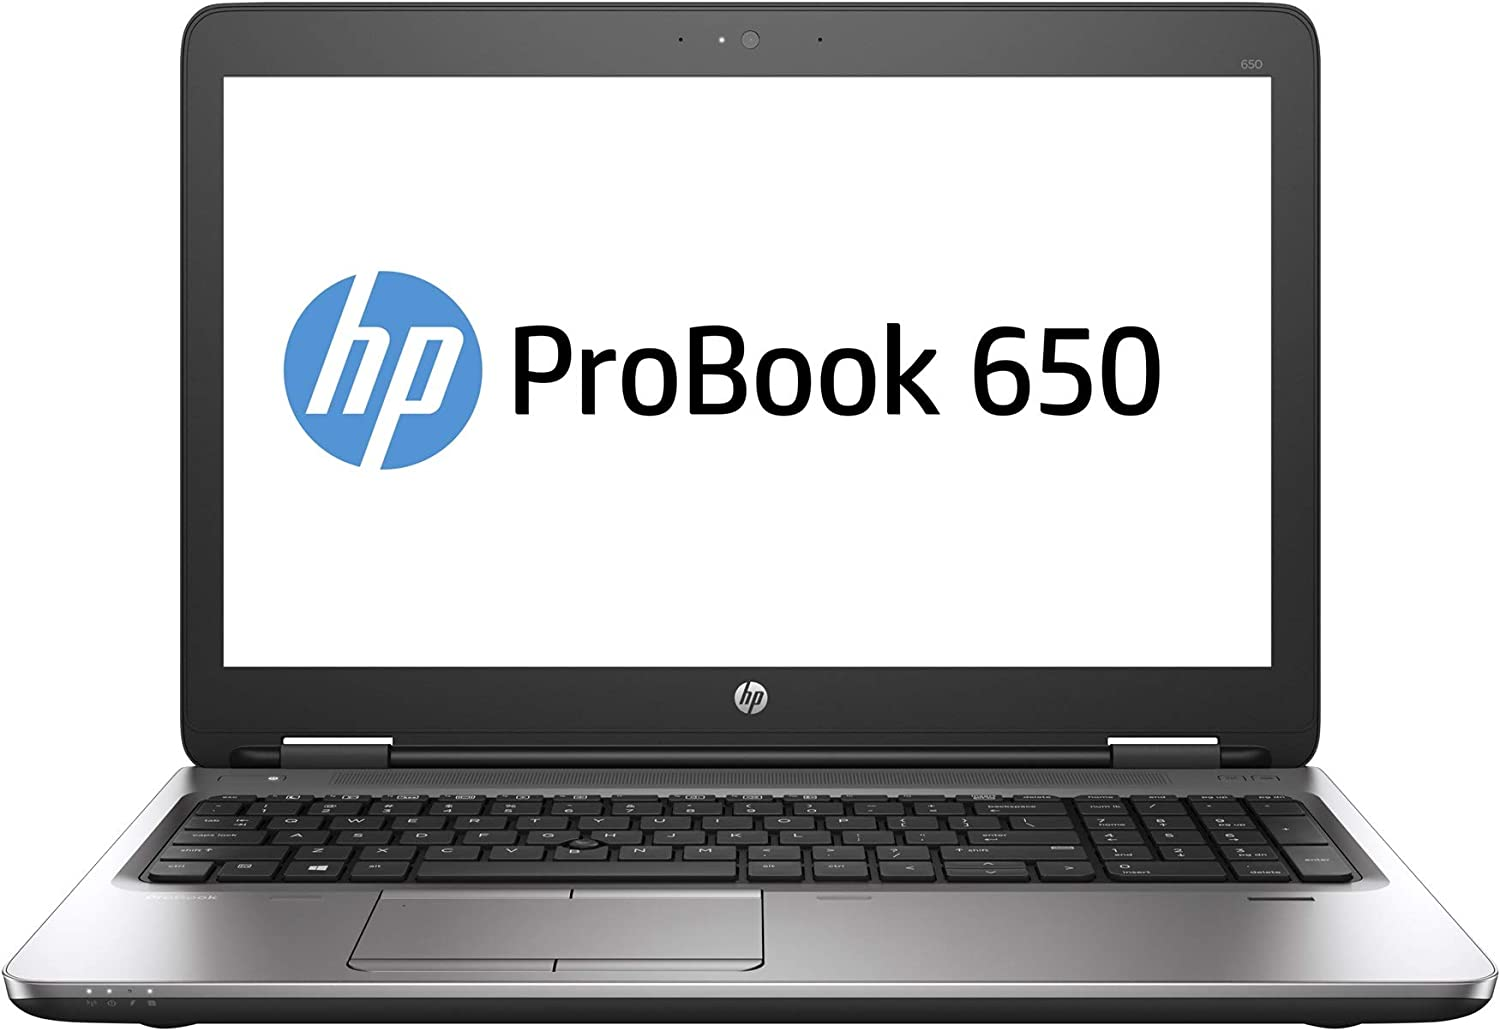 "HP 15.6"" Laptop ProBook 650 G2, Intel Core 6300U, 8GB RAM, 256GB SSD, Windows 10 Pro 64-bit - 7VJ87UT#ABA (Renewed)"